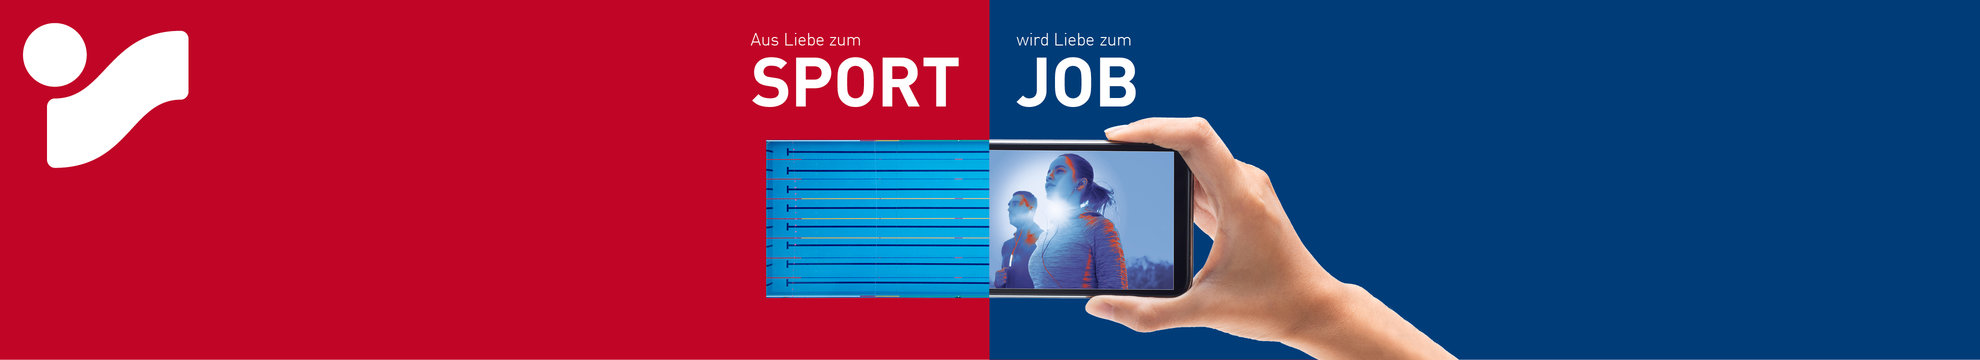 INTERSPORT Austria GmbH